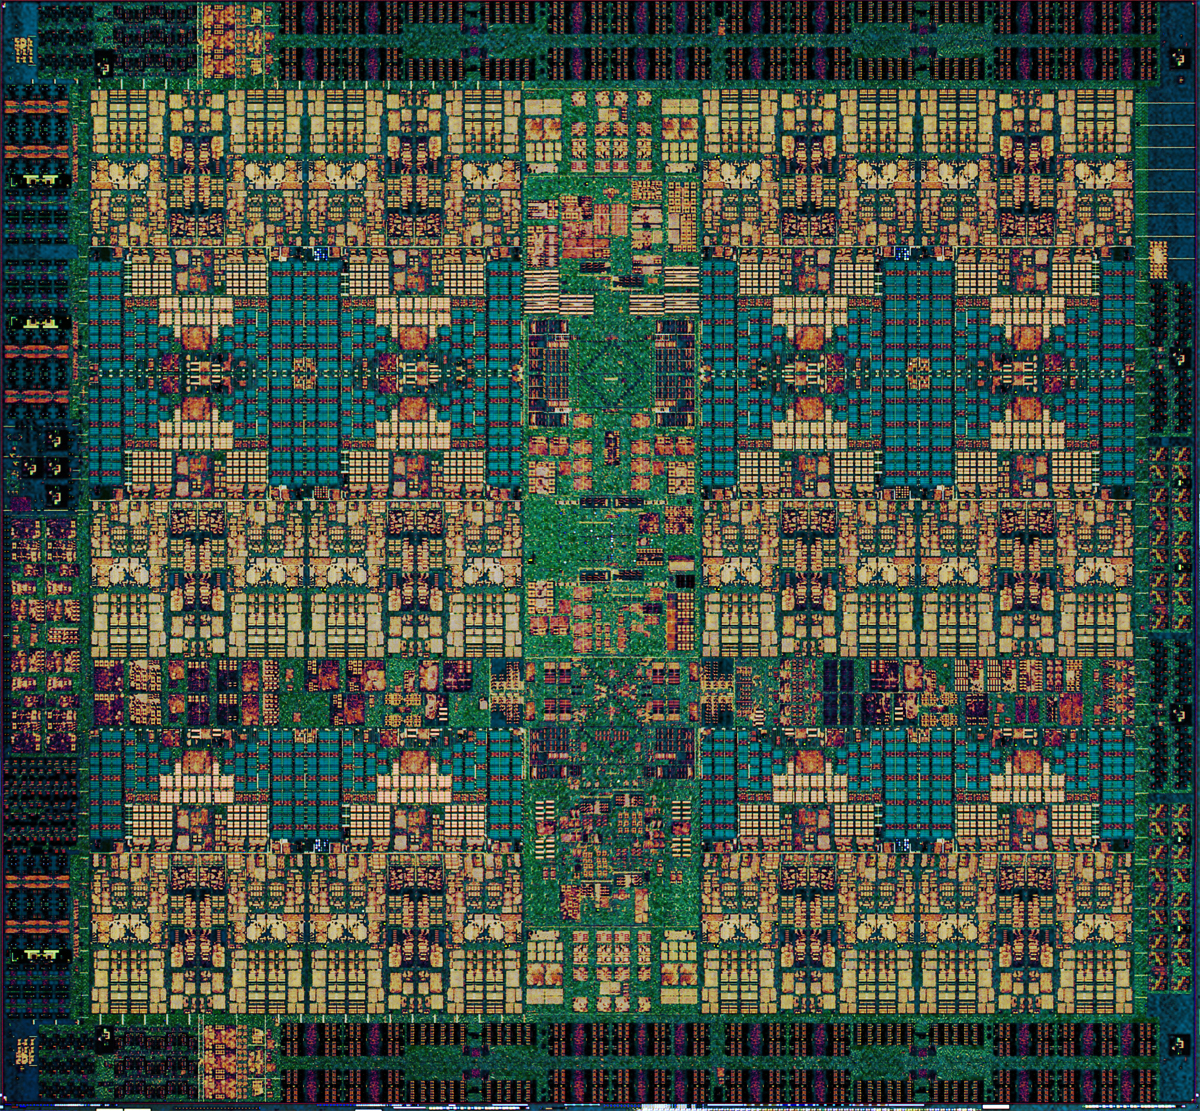 IBM Power9 chip.